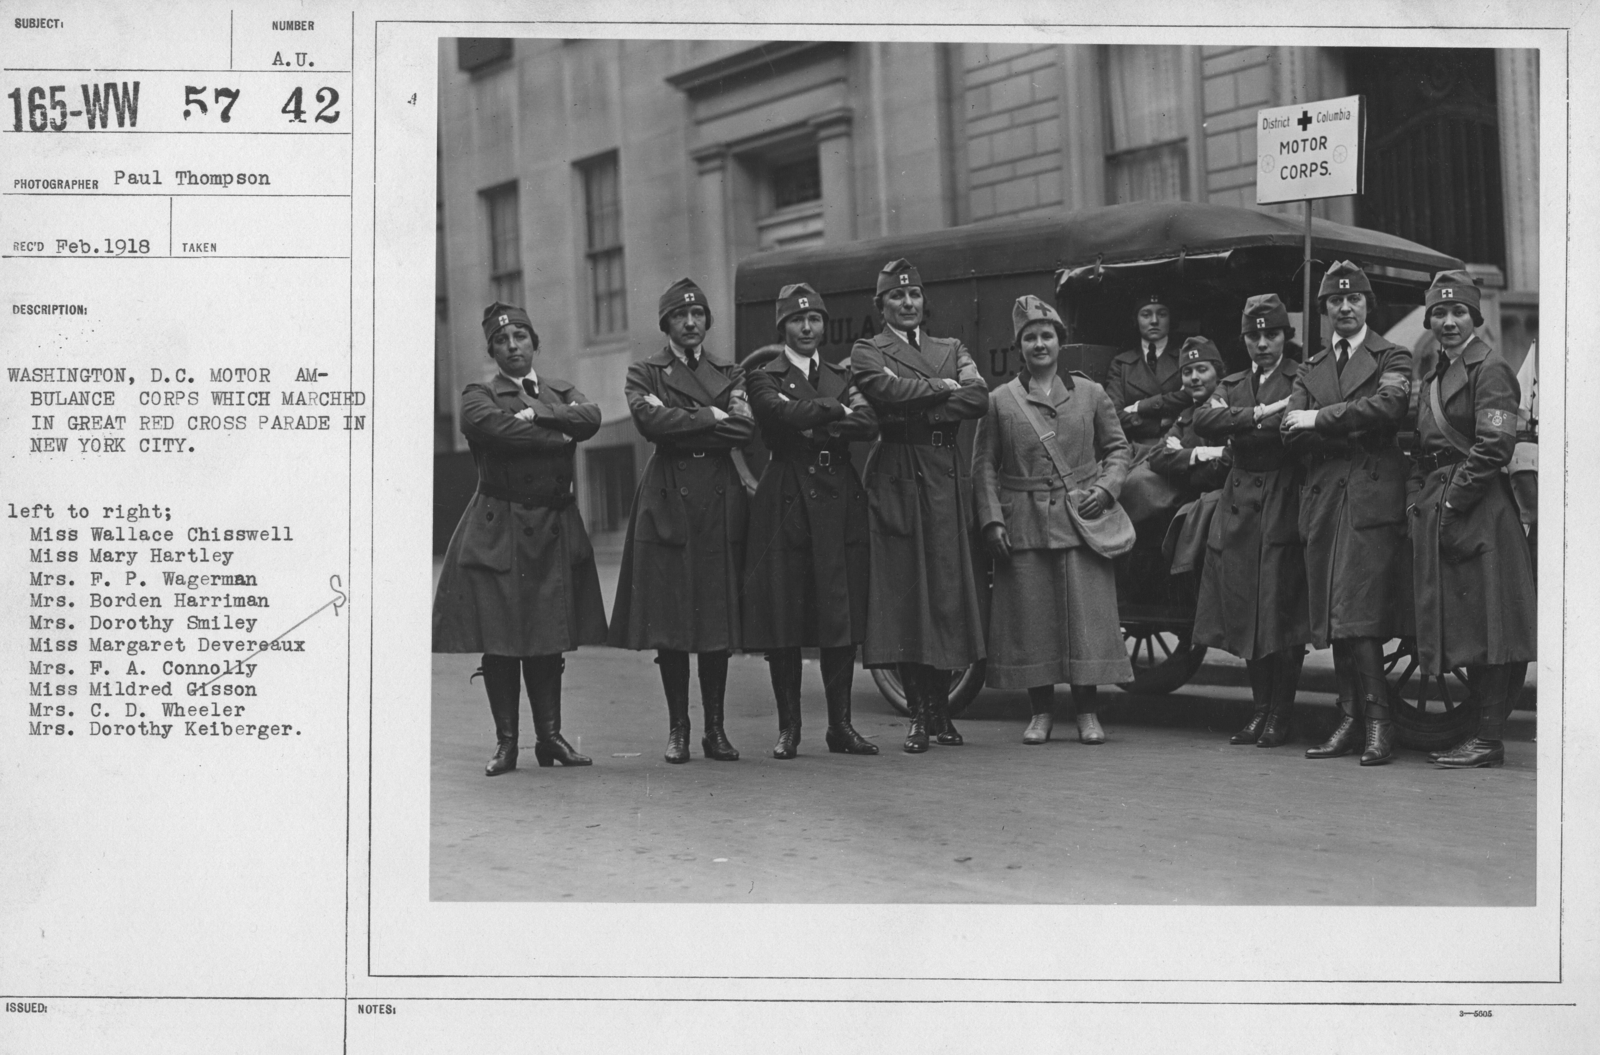 American Red Cross - Groups - Washington, D.C. Motor Ambulance Corps which marched in Great Red Cross Paradein New York City. Left to right; Mis Wallace Chisswell, Miss Mary Hartley, Mrs. F.P. Wagerman, Mrs. Borden Harriman, Mrs. Dorothy Smiley, Miss Margaret Devereaux, Mrs. F.A. Connolly, Miss Mildred Gisson, Mrs. C.D. Wheeler, Mrs. Dorothy Keiberger